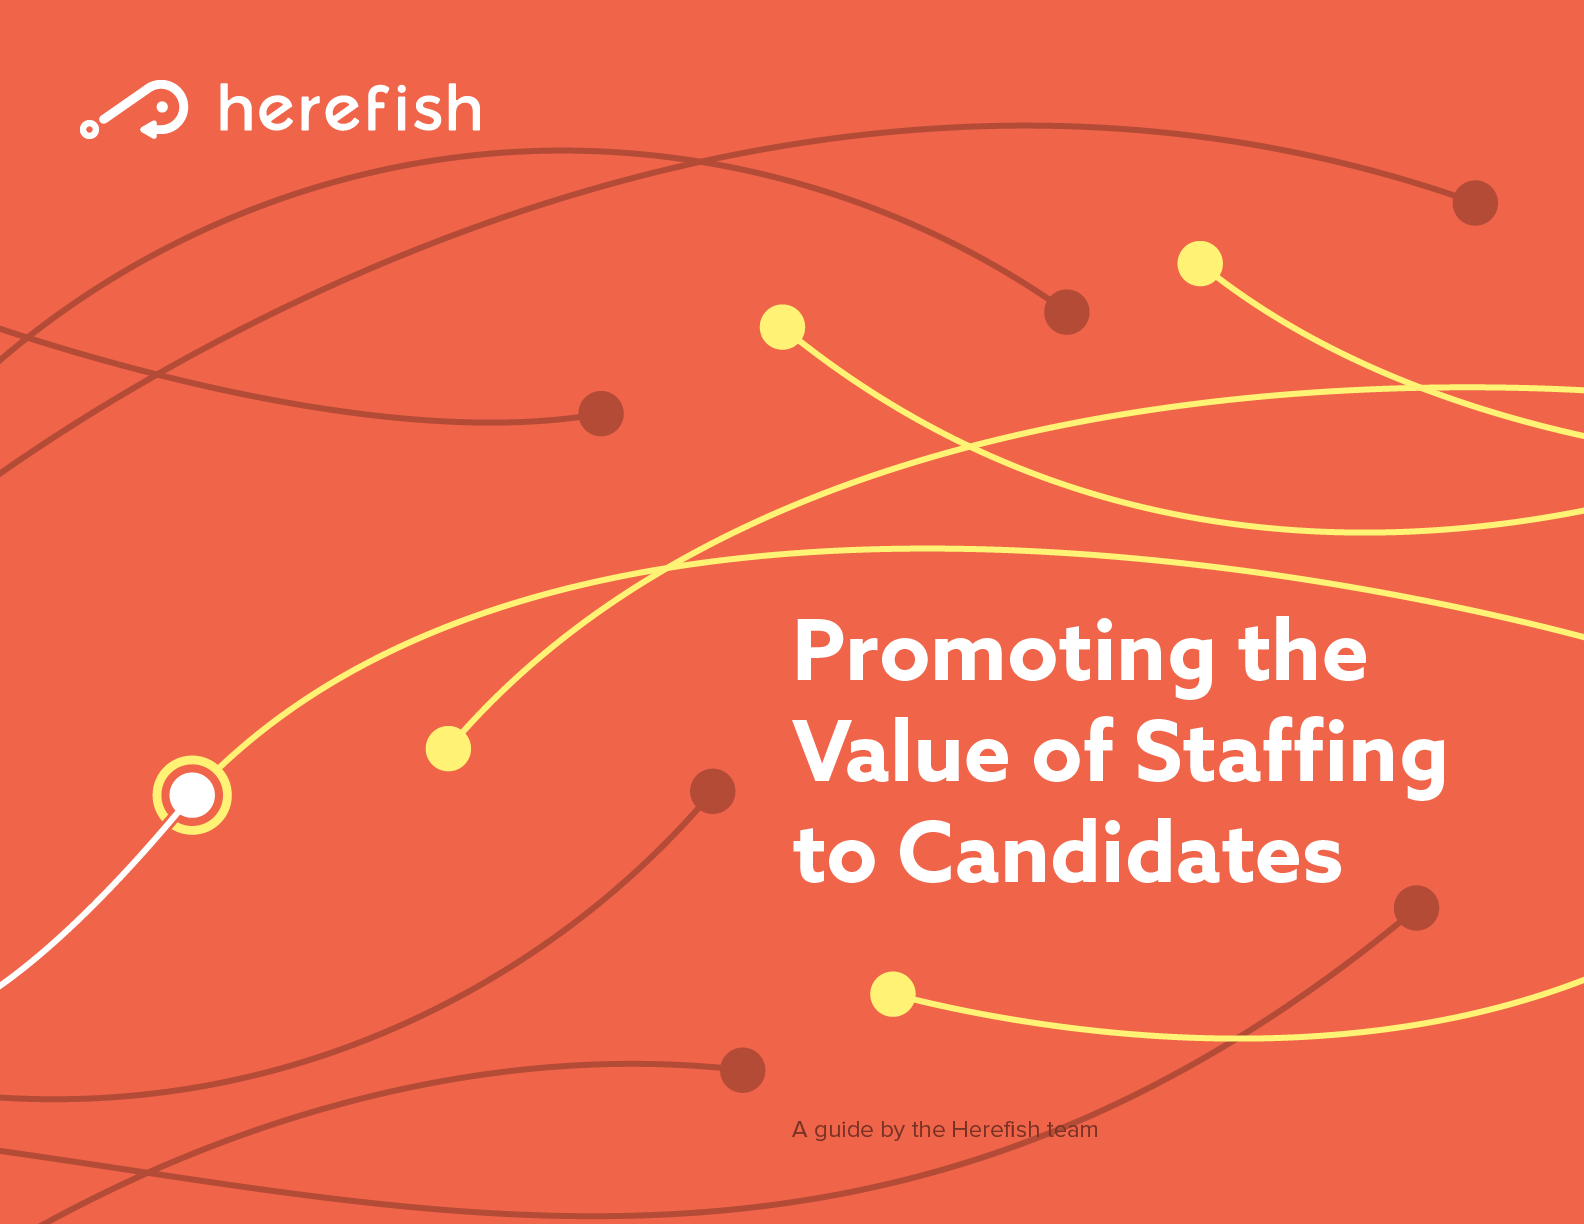 promote the value of staffing